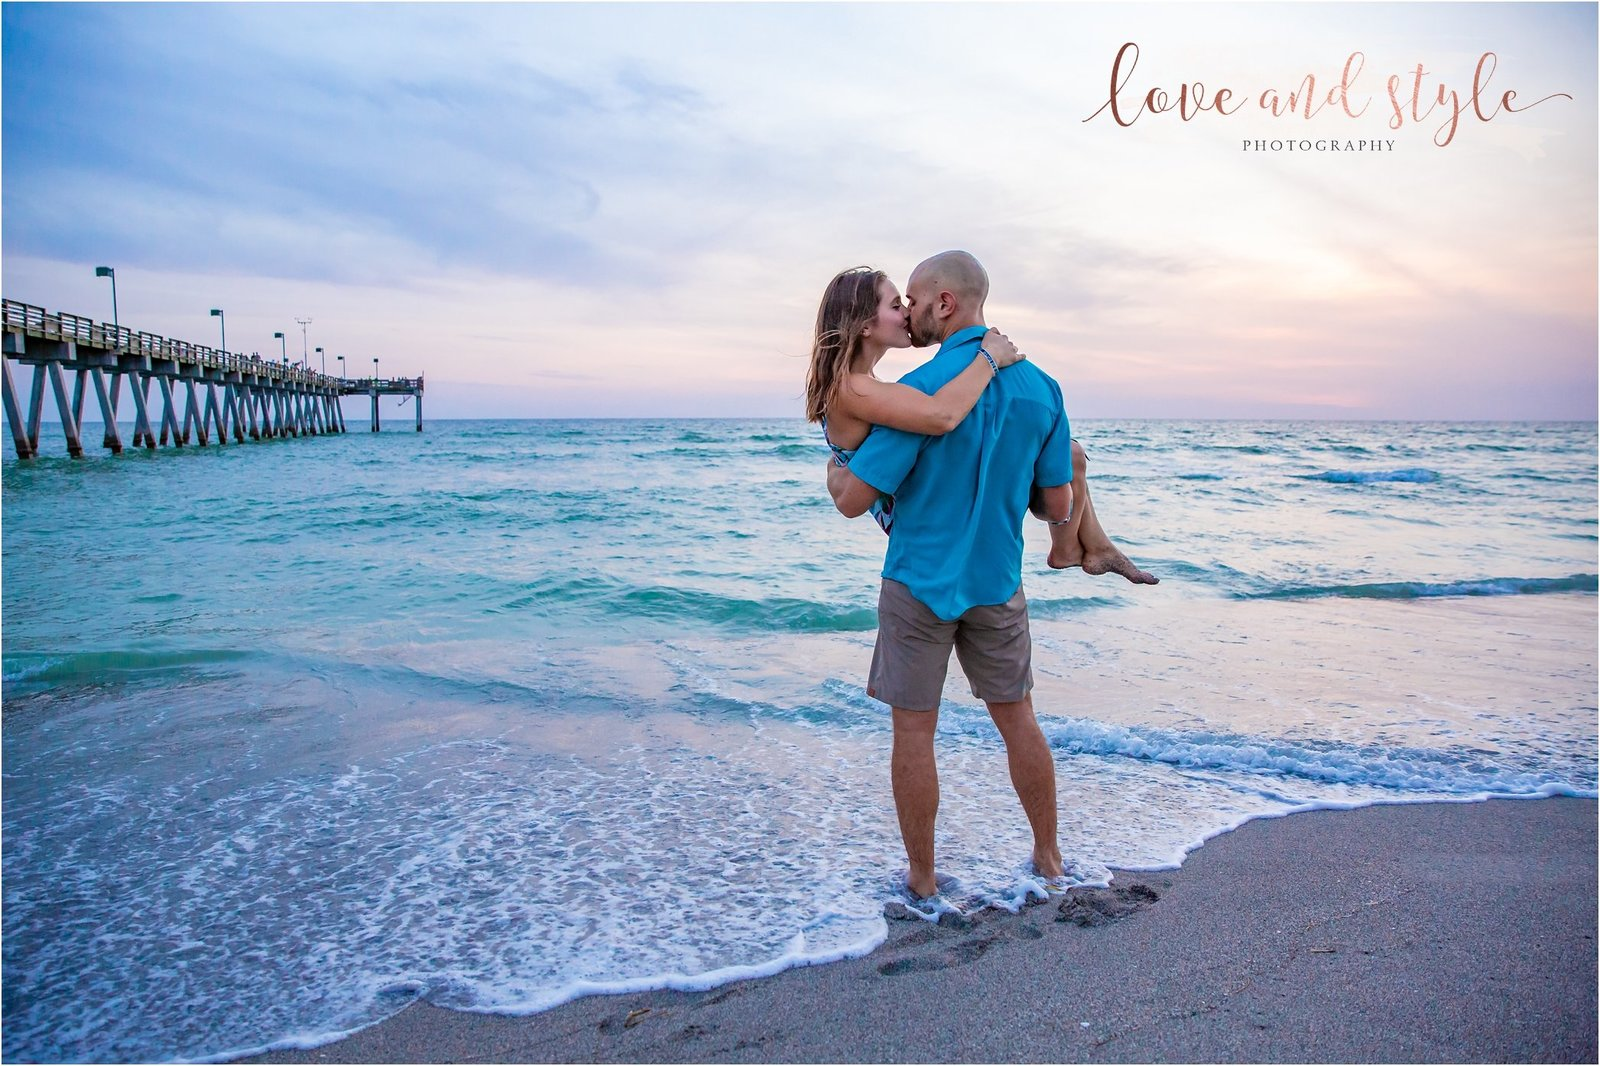 Engagement Photography at the Venice Dog Beach during sunset by the pier